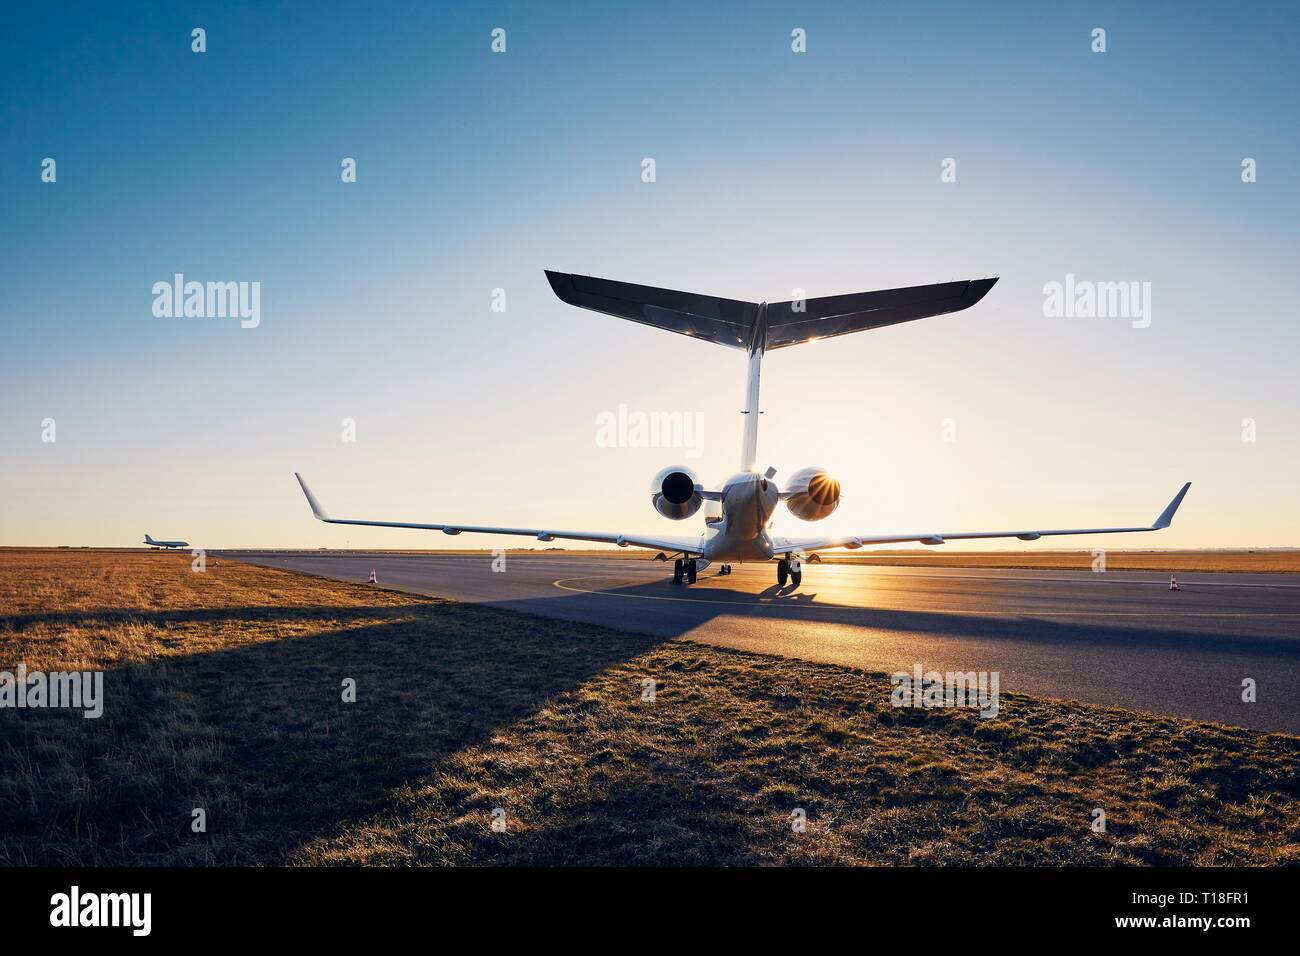 Airport at sunset. Silhouette of private jet against runway. - Stock Image